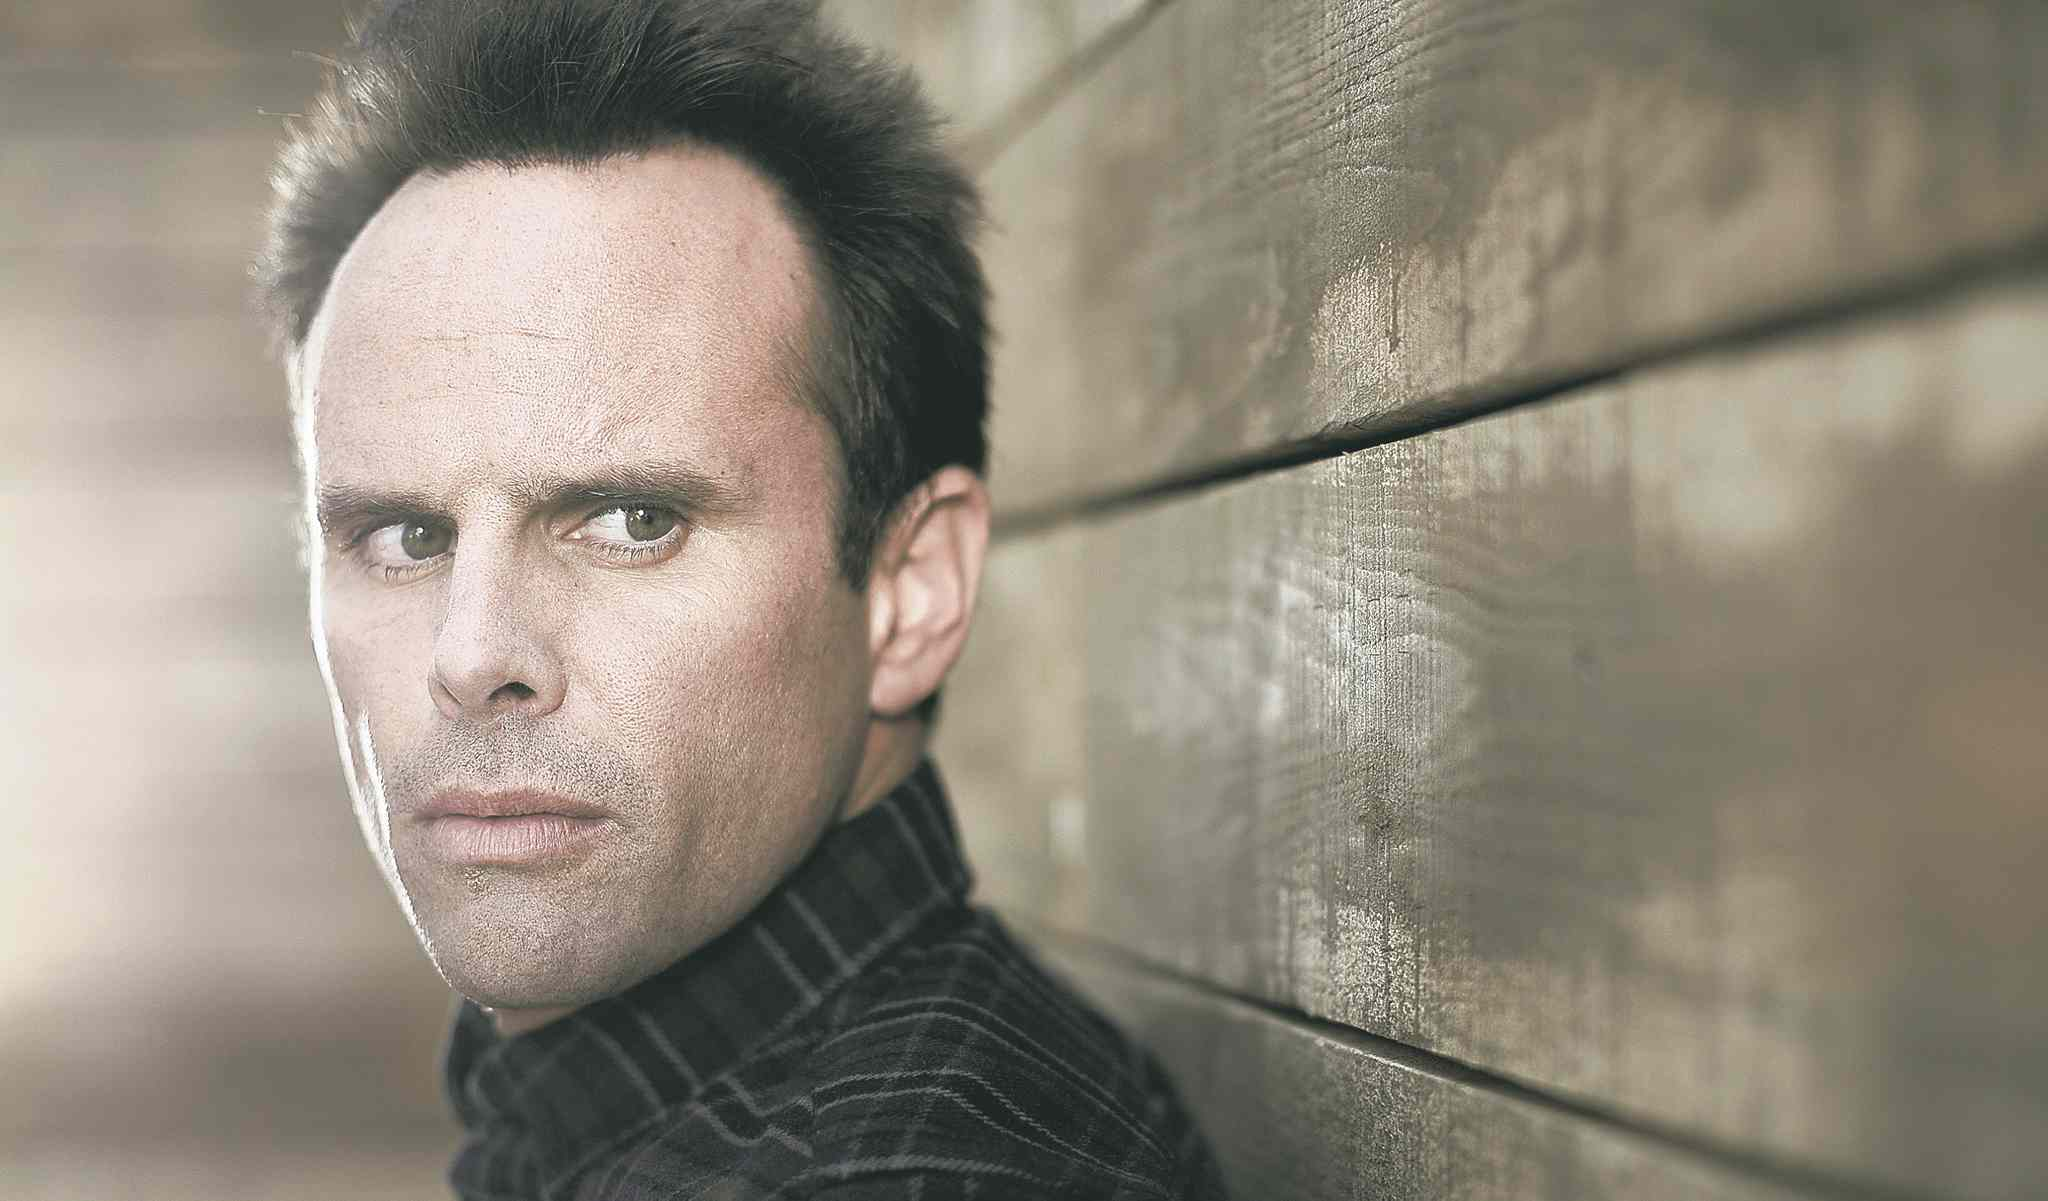 Walton Goggins as Boyd Crowder on the TV show Justified.